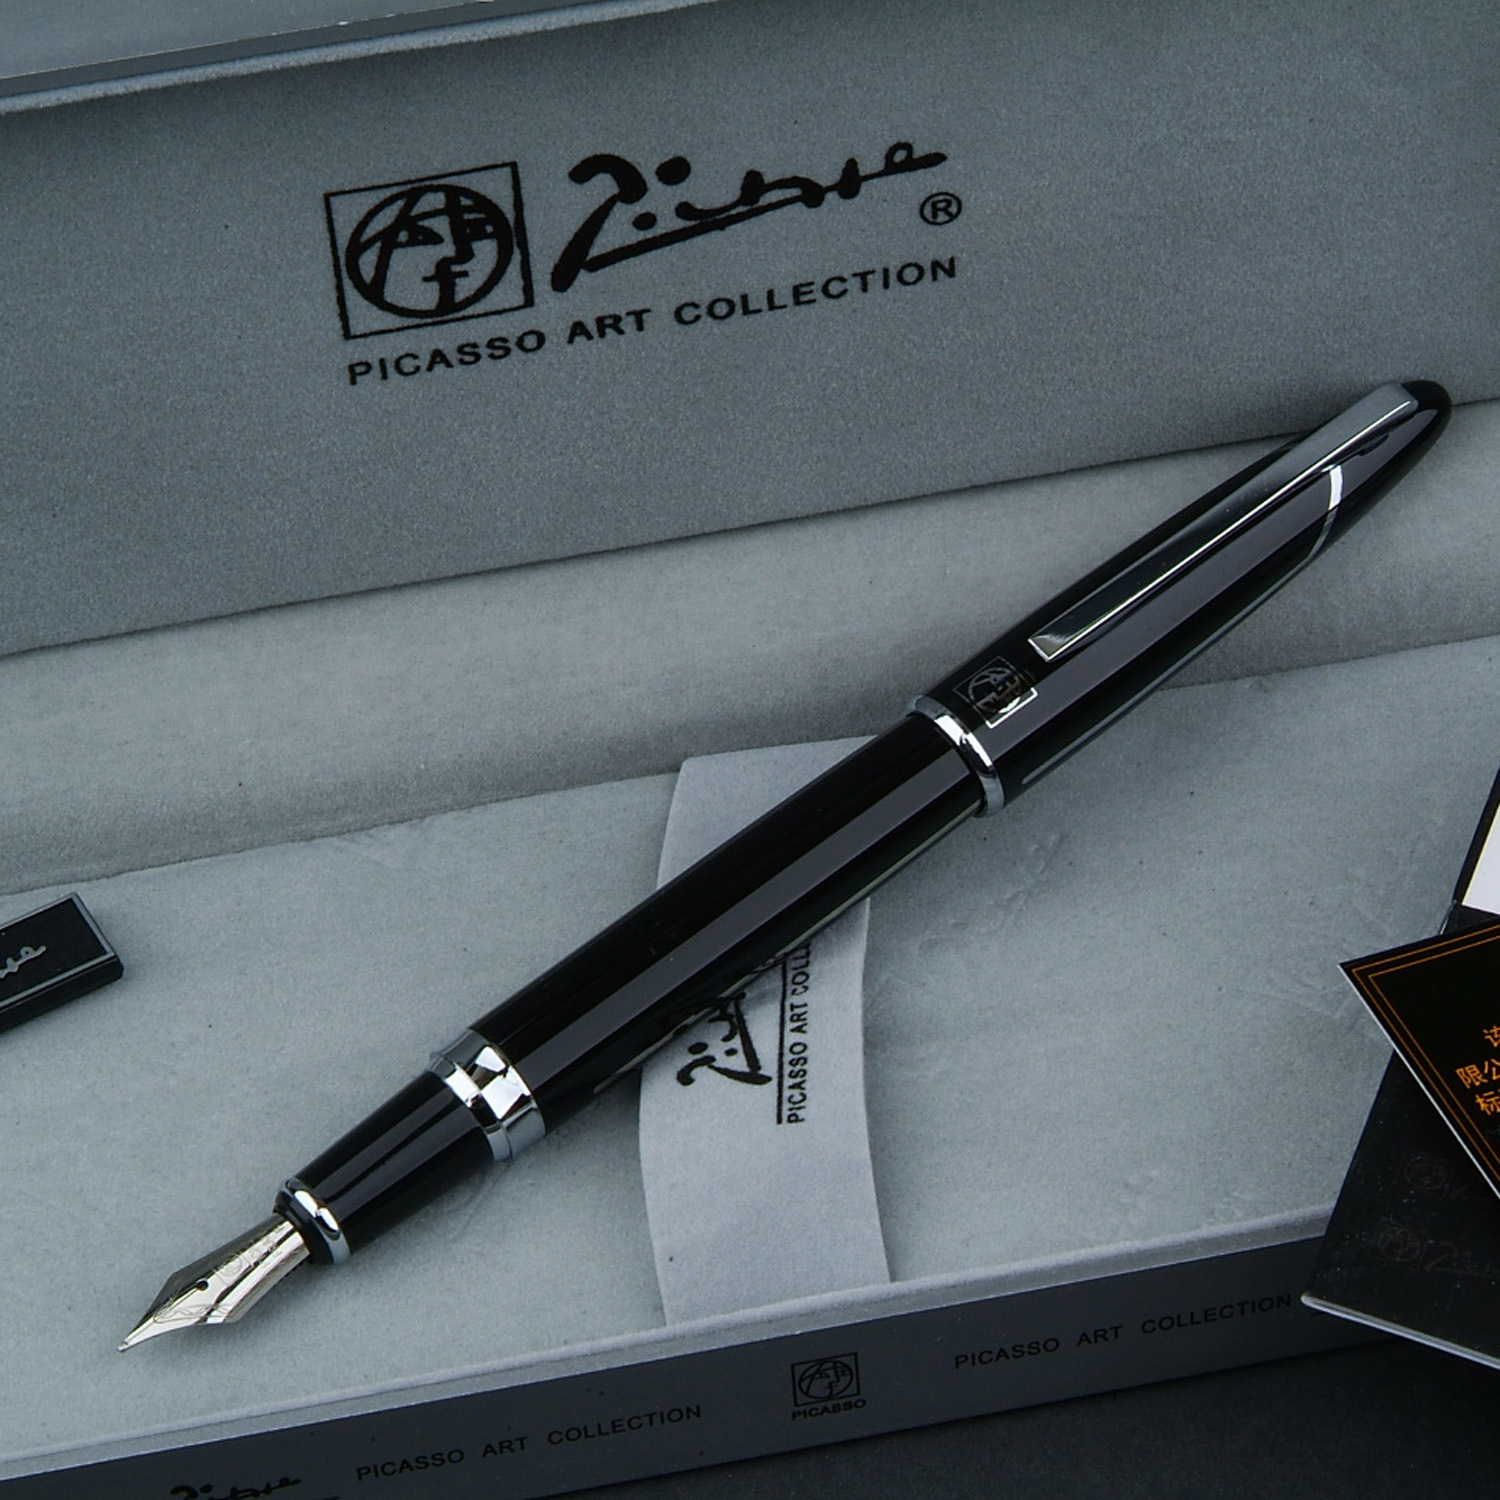 Picasso Baroque fountain pen high quality, free shipping picasso picasso ps 919 baroque black silver iridic gold fountain pen ink pen picas pen free shipping